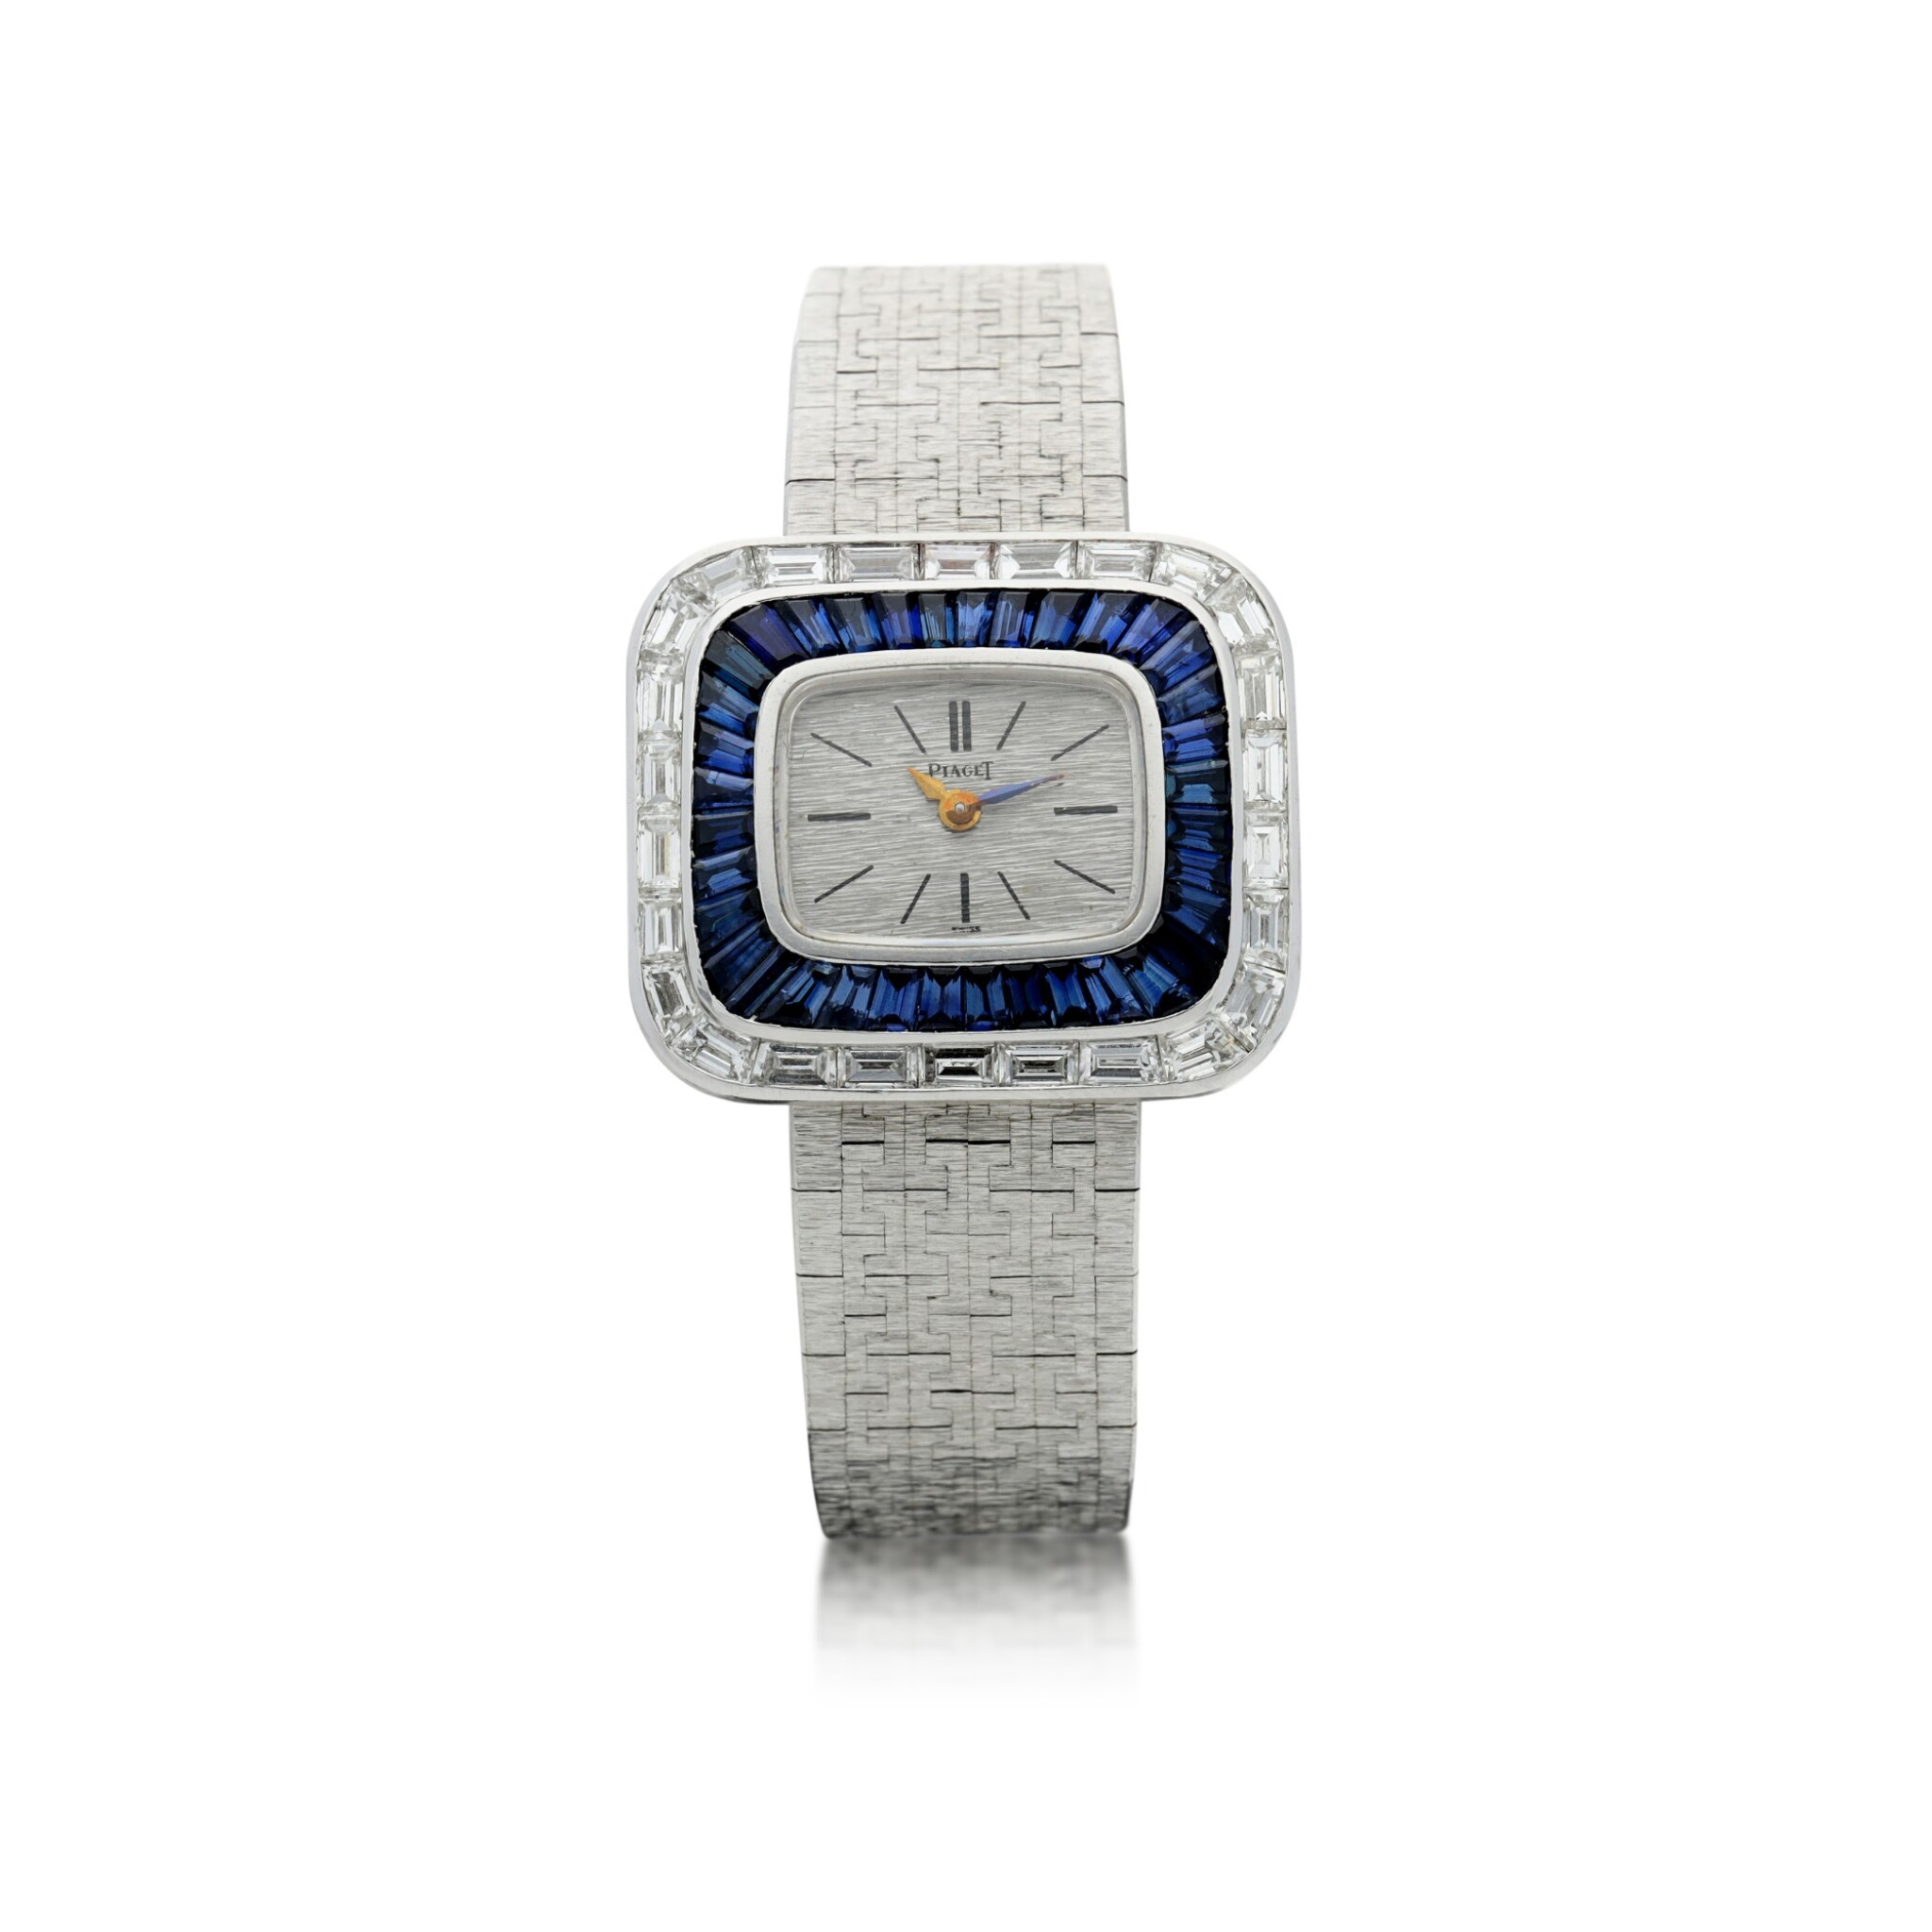 View full screen - View 1 of Lot 98. REFERENCE 3655A6 A LADY'S WHITE GOLD BRACELET WATCH WITH DIAMOND AND SAPPHIRE-SET BEZEL, CIRCA 1970.